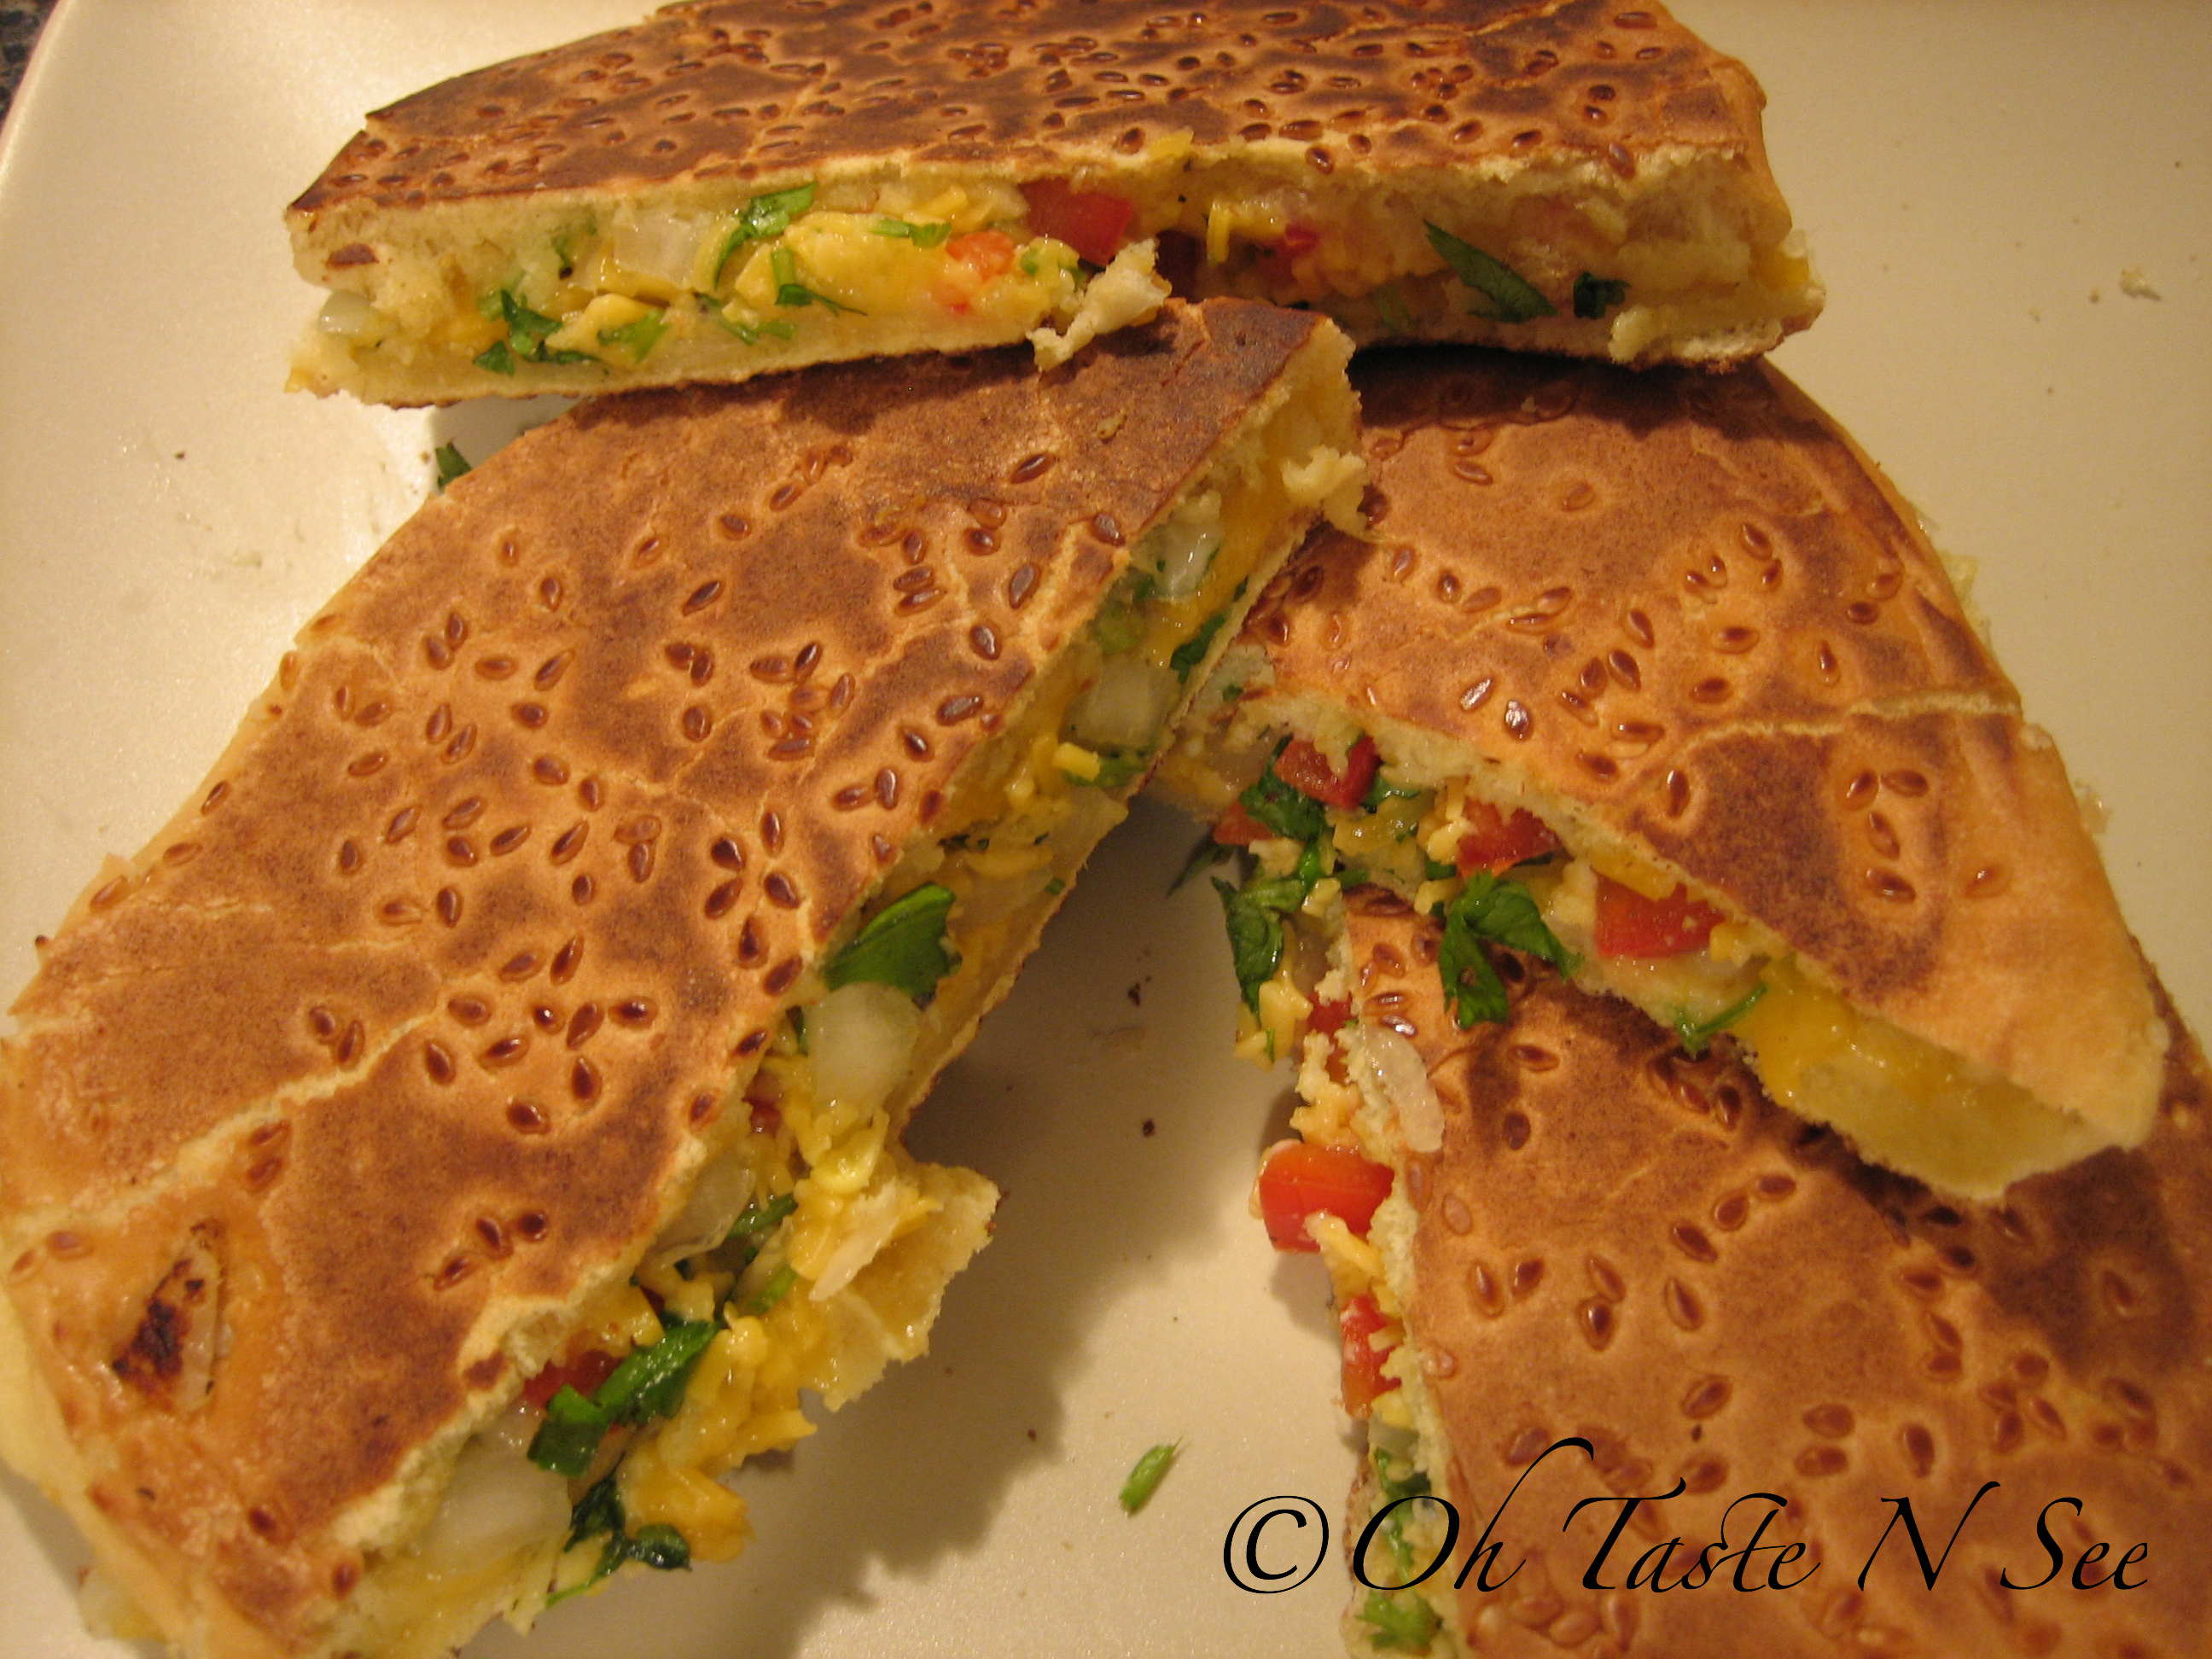 Indianized Grilled Cheese Sandwiches